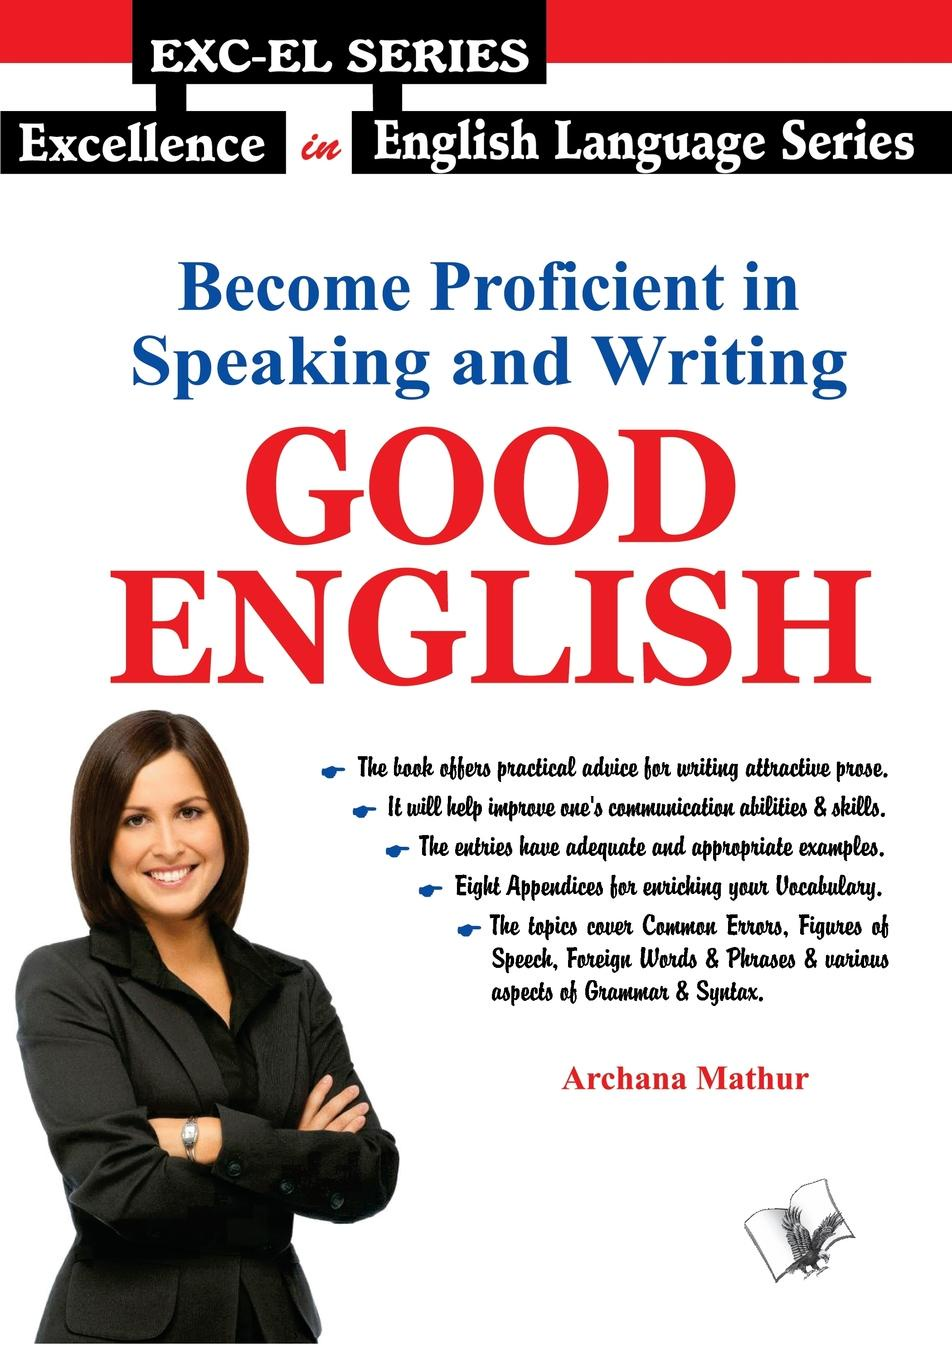 Archana Mathur Become Proficient In Speaking and Writing - Good English